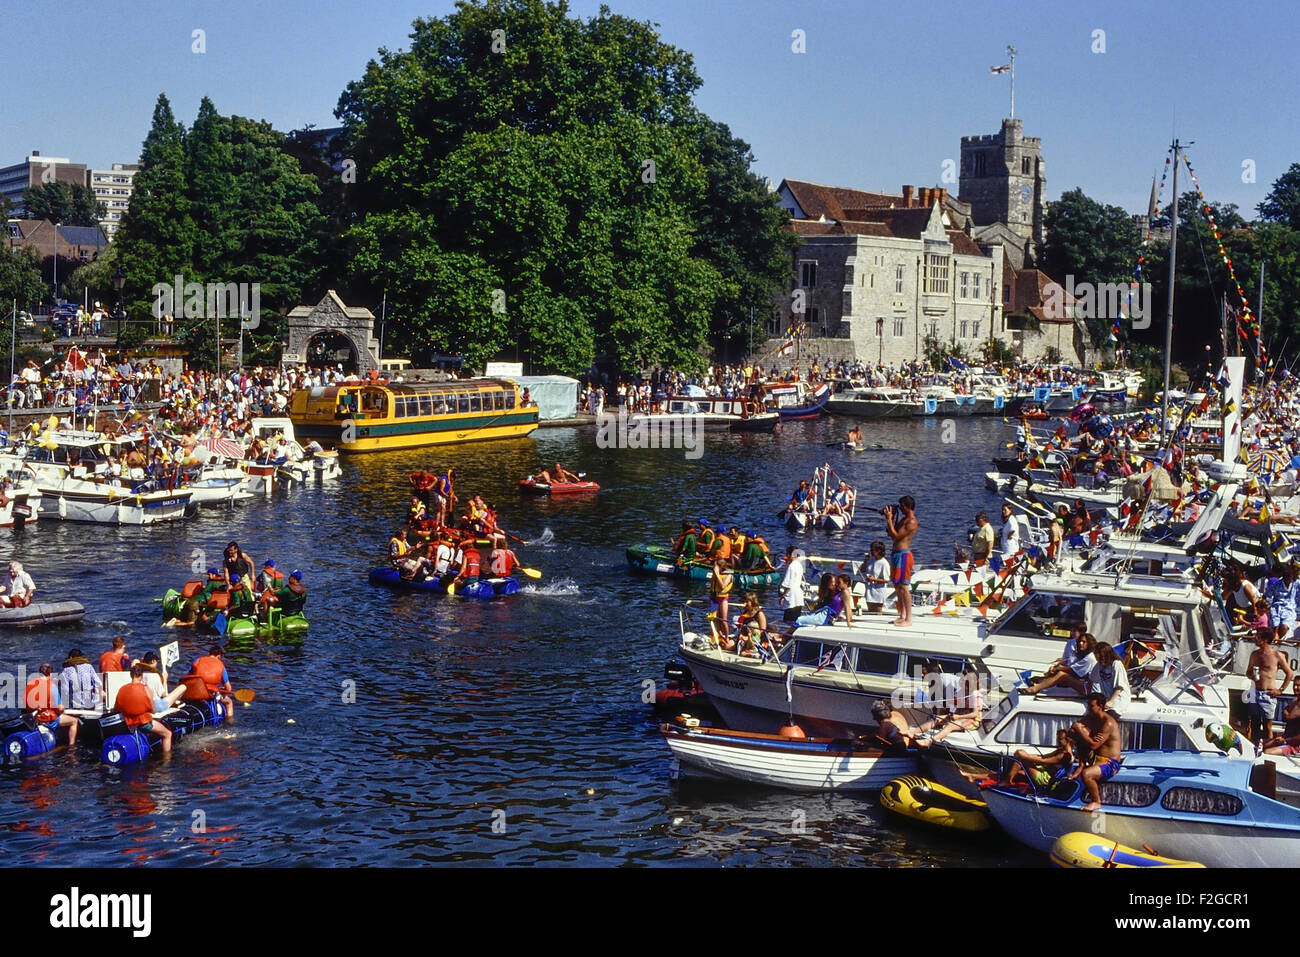 Maidstone river festival. Kent. England. UK. Circa 1980's - Stock Image